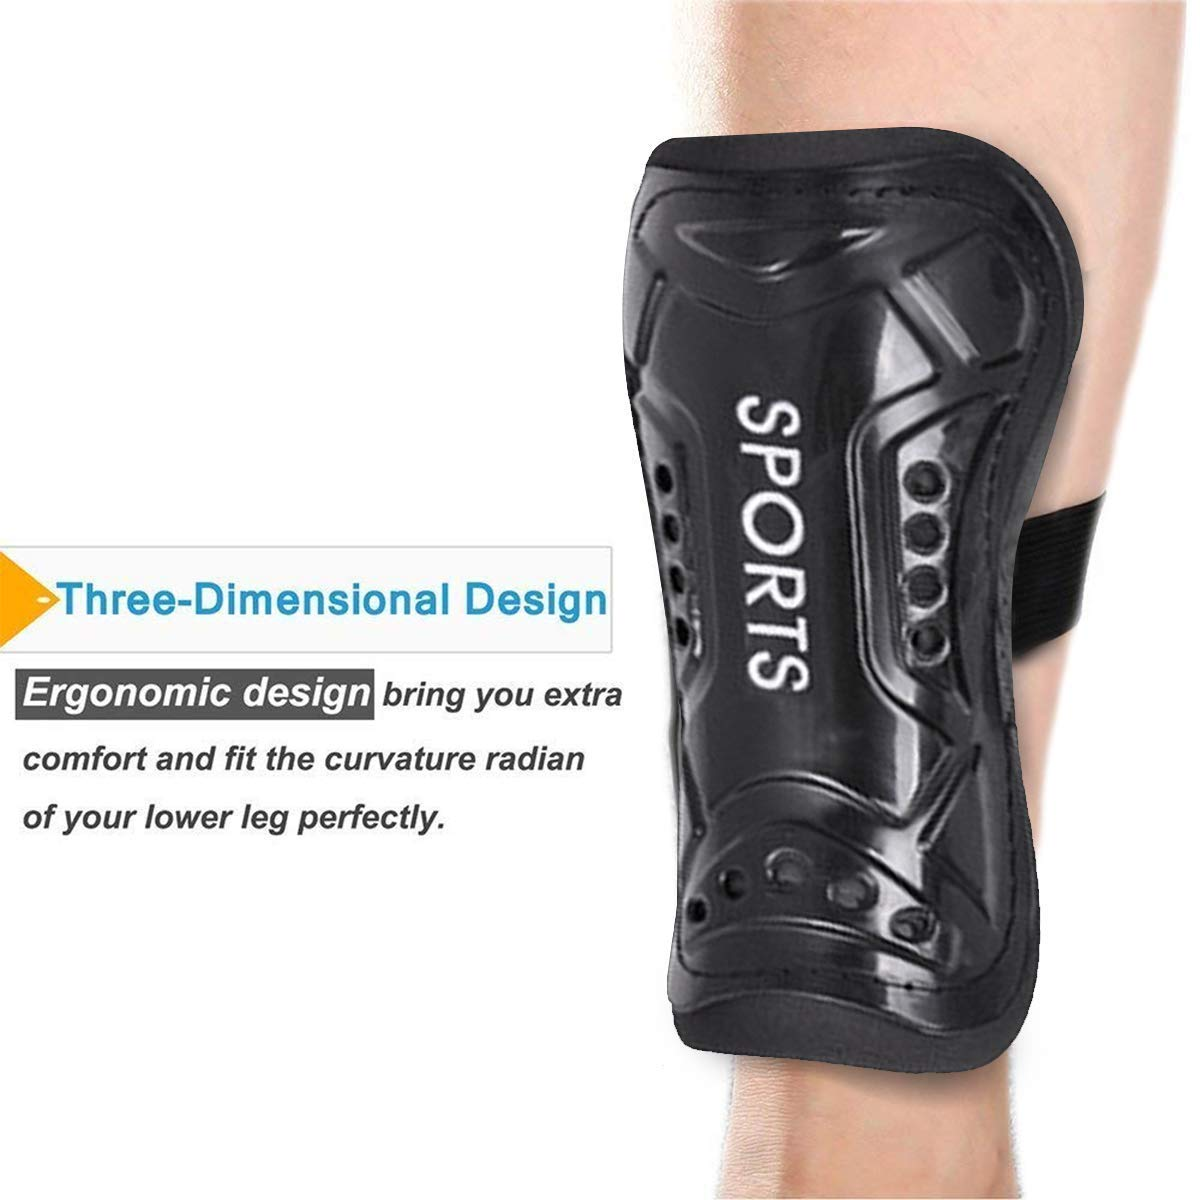 ASTARC Youth Soccer Shin Guards,Breathable Child Calf Protective Gear Soccer Equipment for 3-10 Years Old Boys Girls Children Teenagers,1 Pair Lightweight,Sports protection